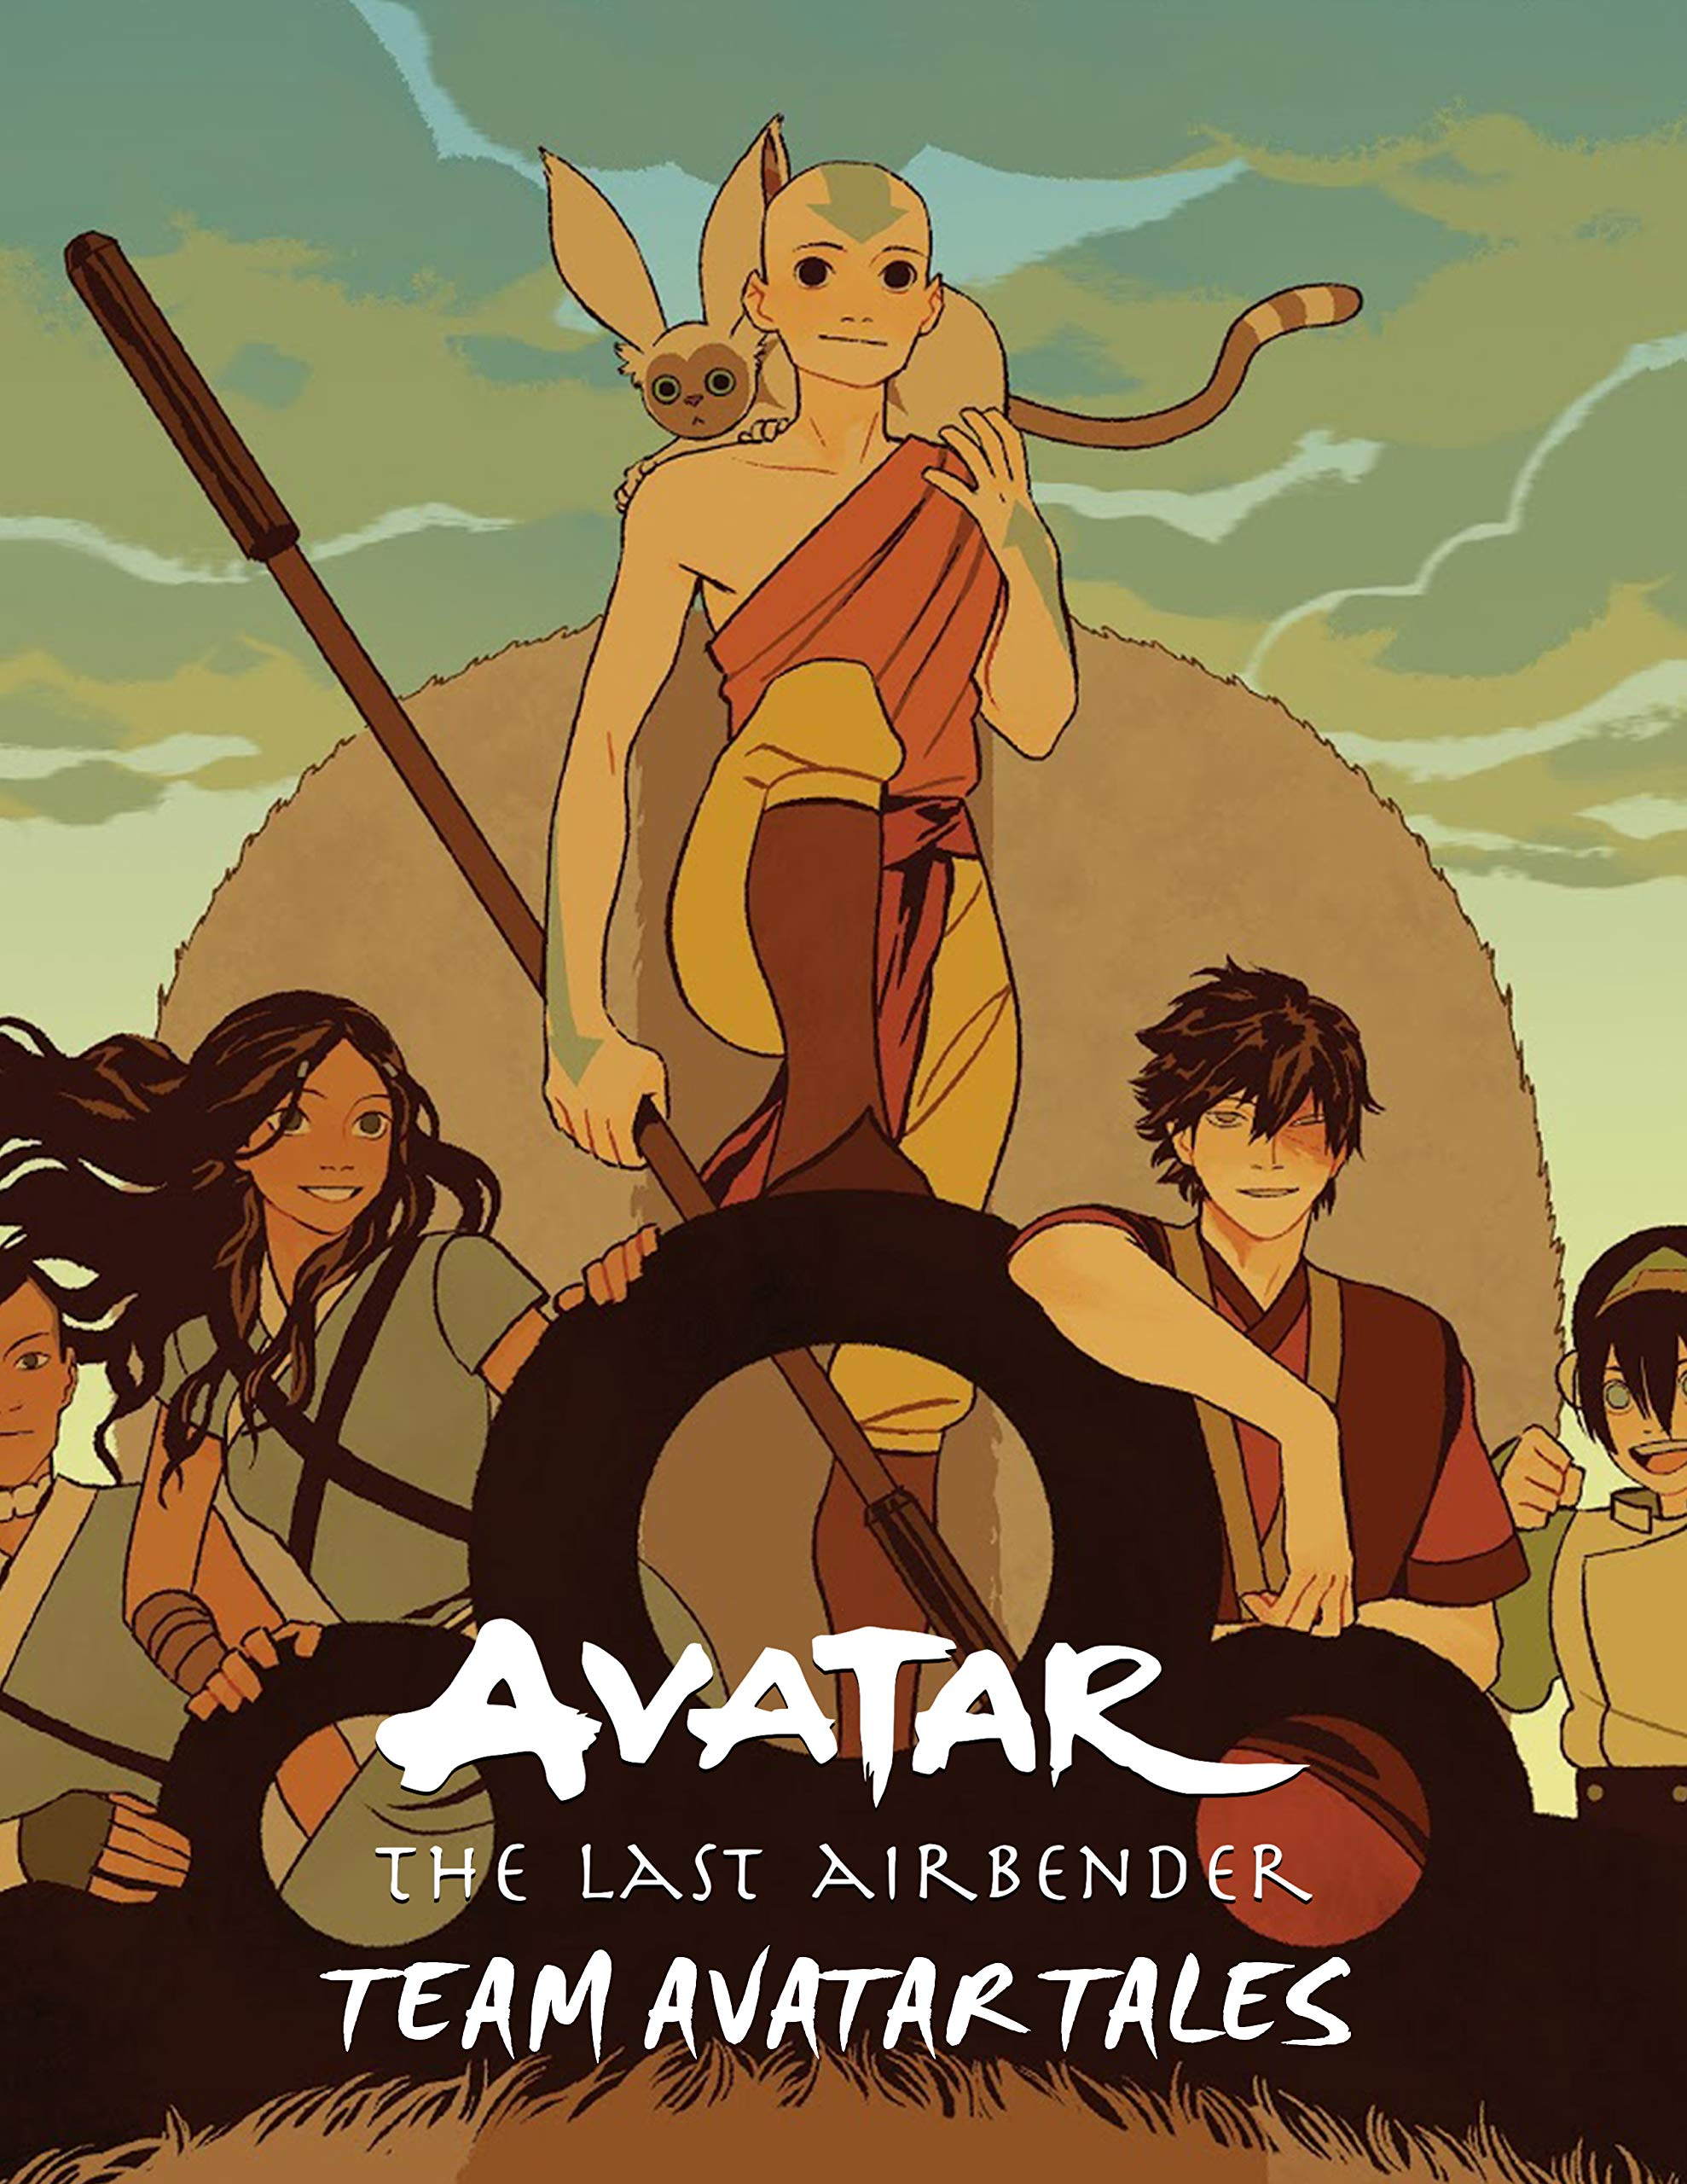 Avatar: The Last Airbender Team Avatar Tales Comics Book Nickelodeon Avatar